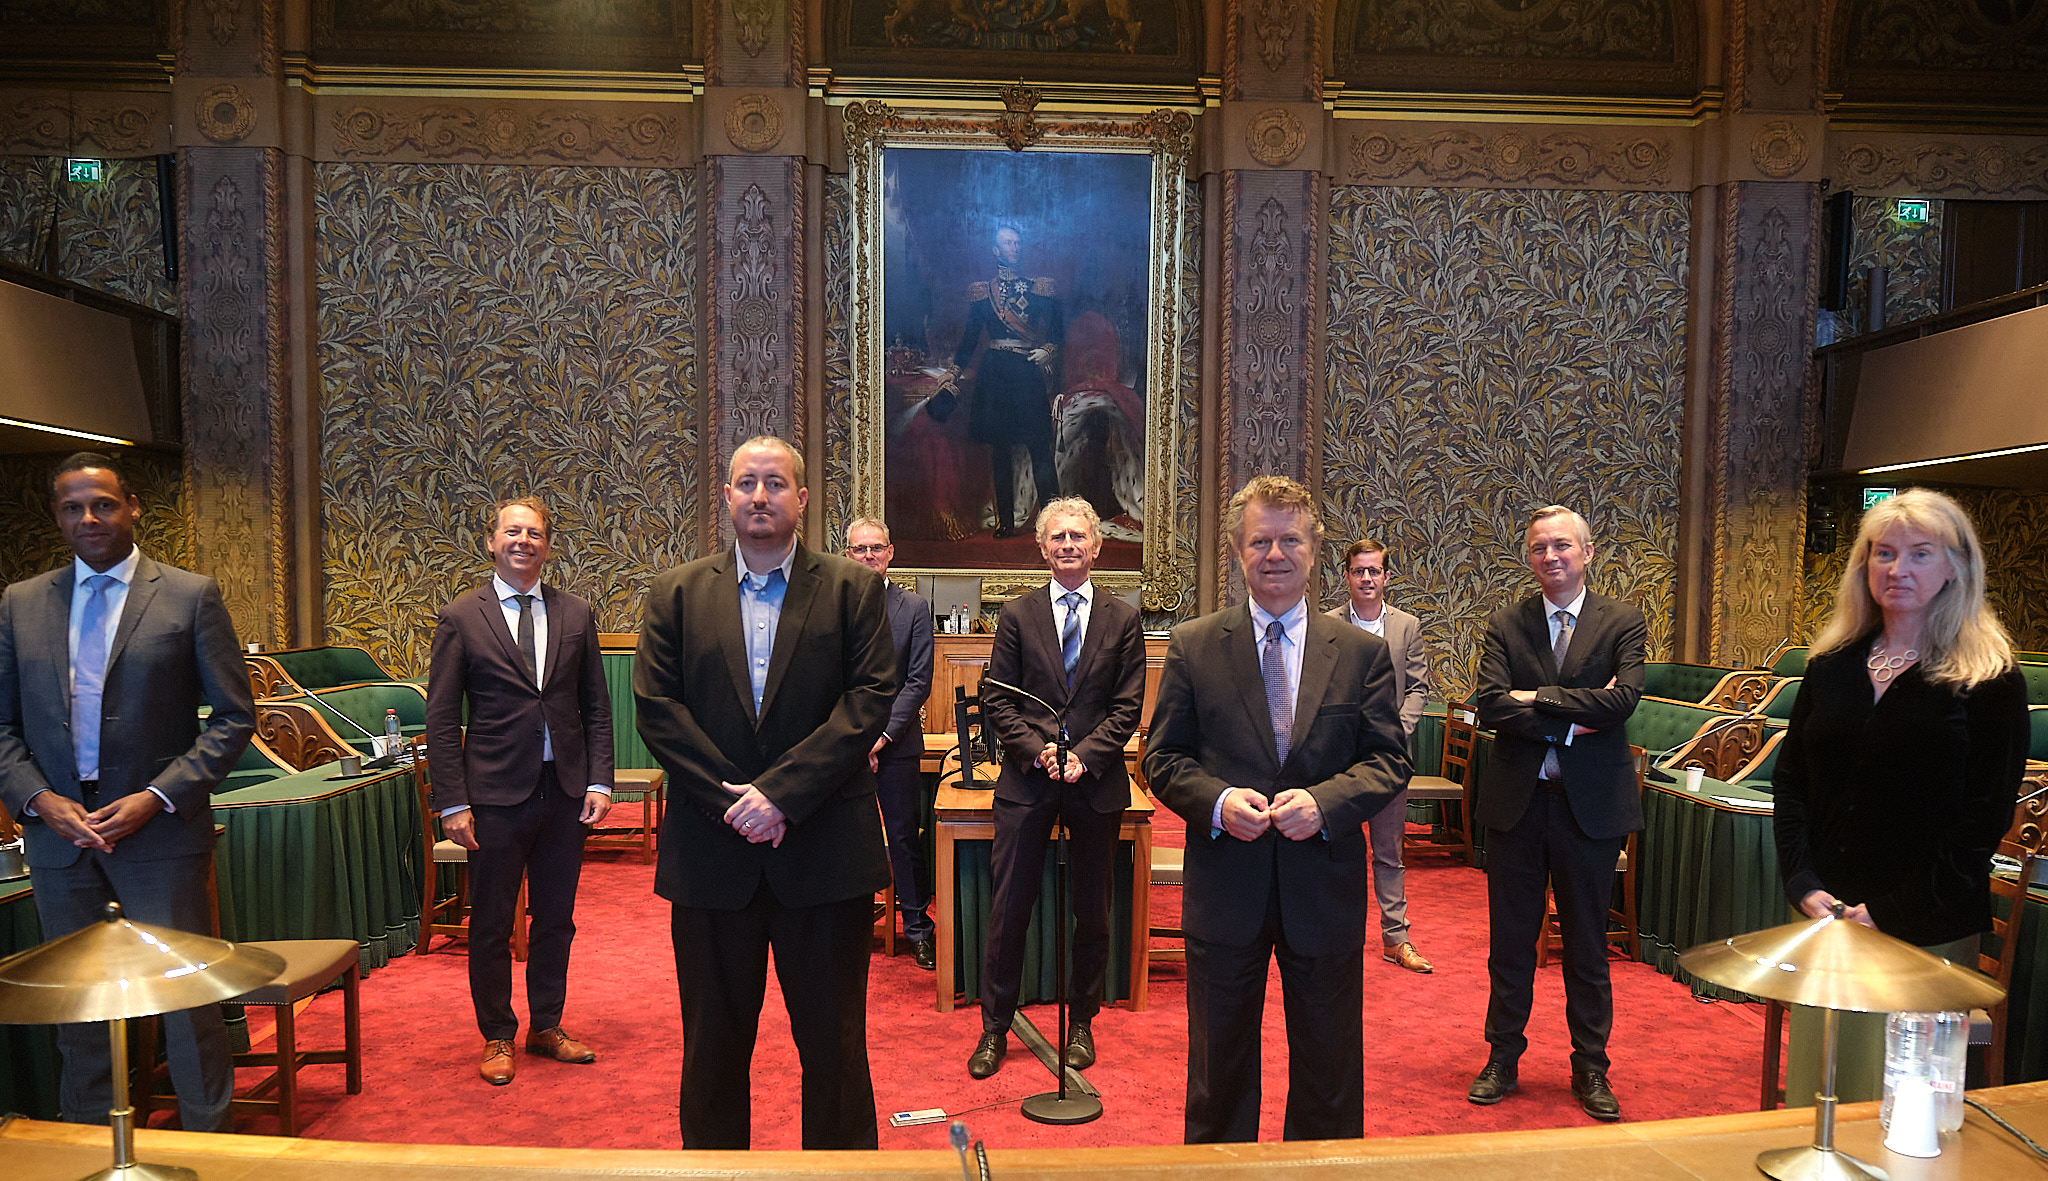 Bruce-Tim-at-First-Chamber-group-photo.jpg